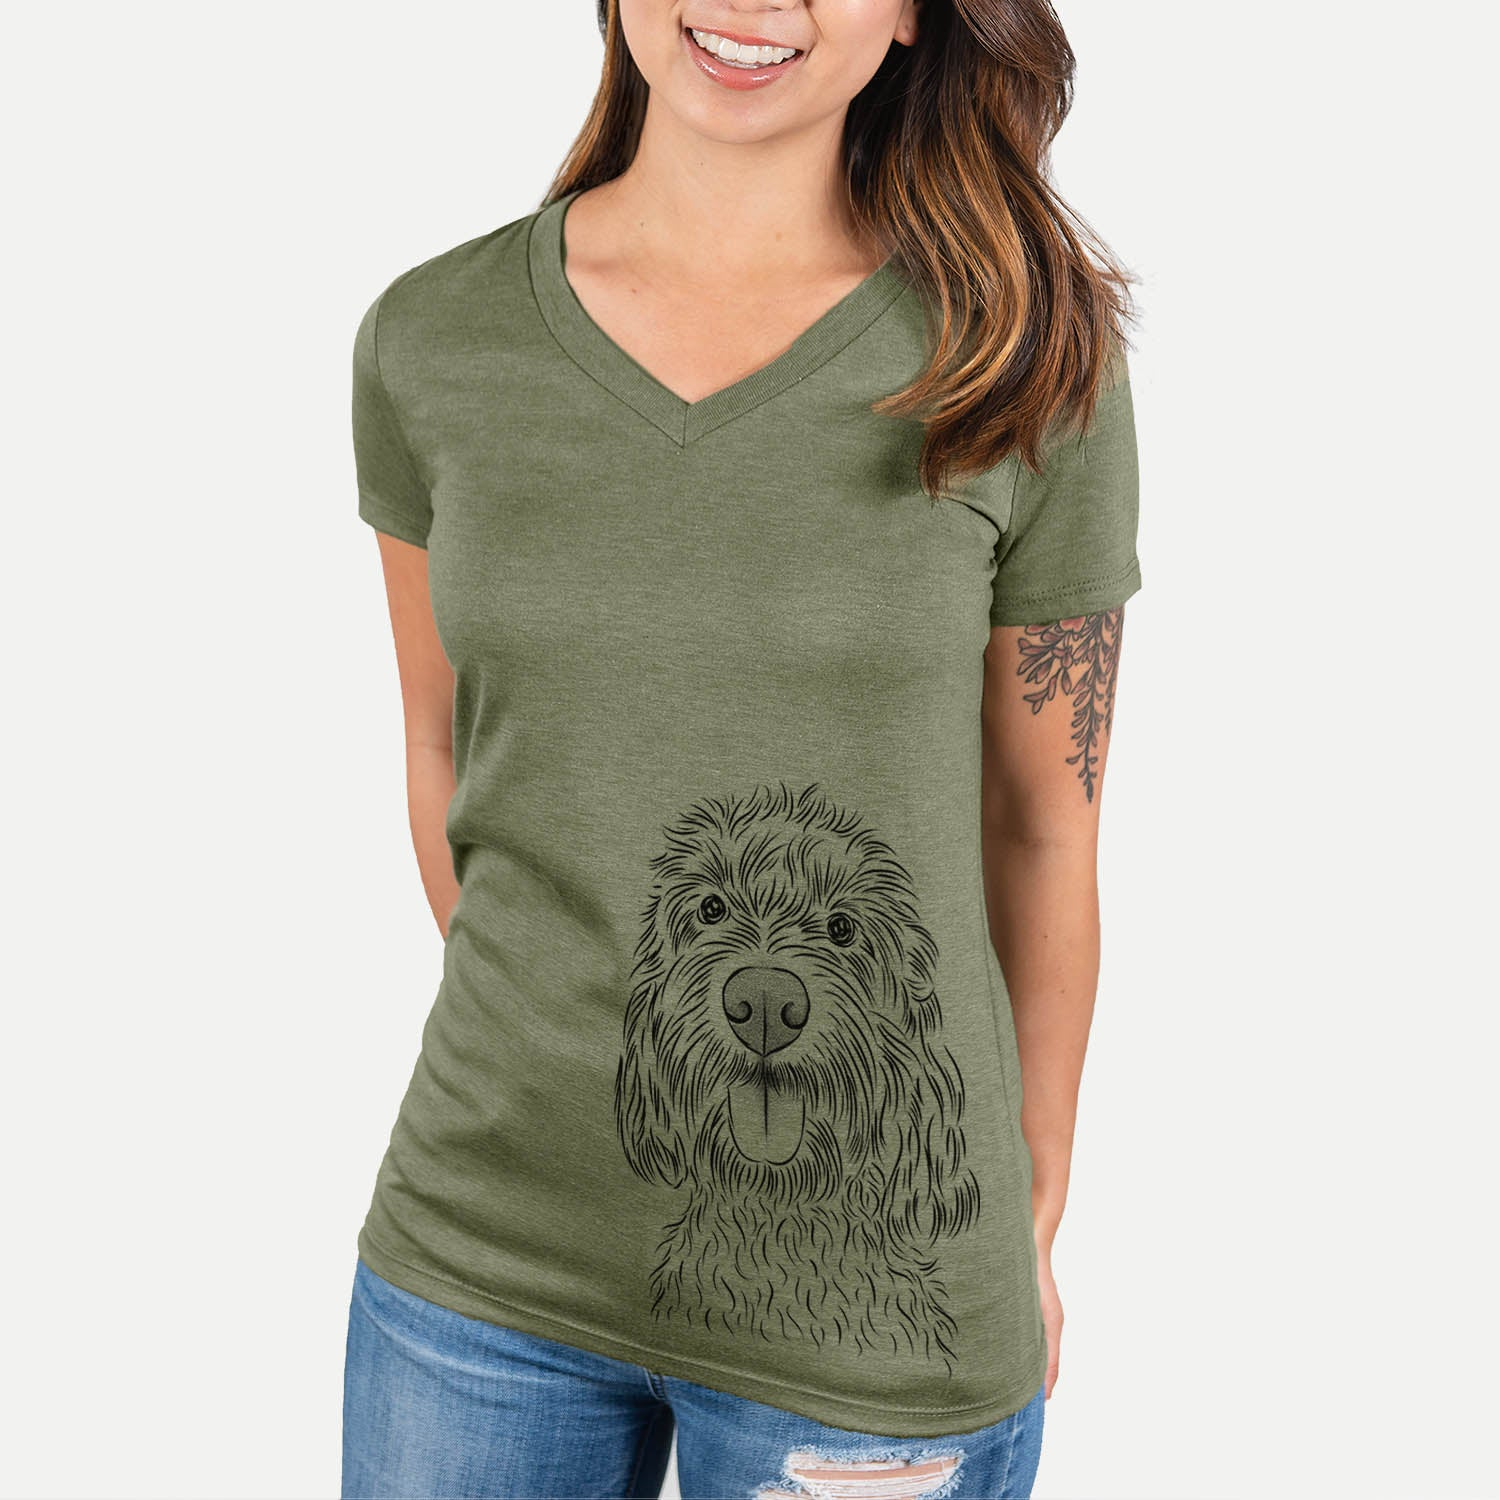 Clover the Cockapoo - Women's Modern Fit V-neck Shirt